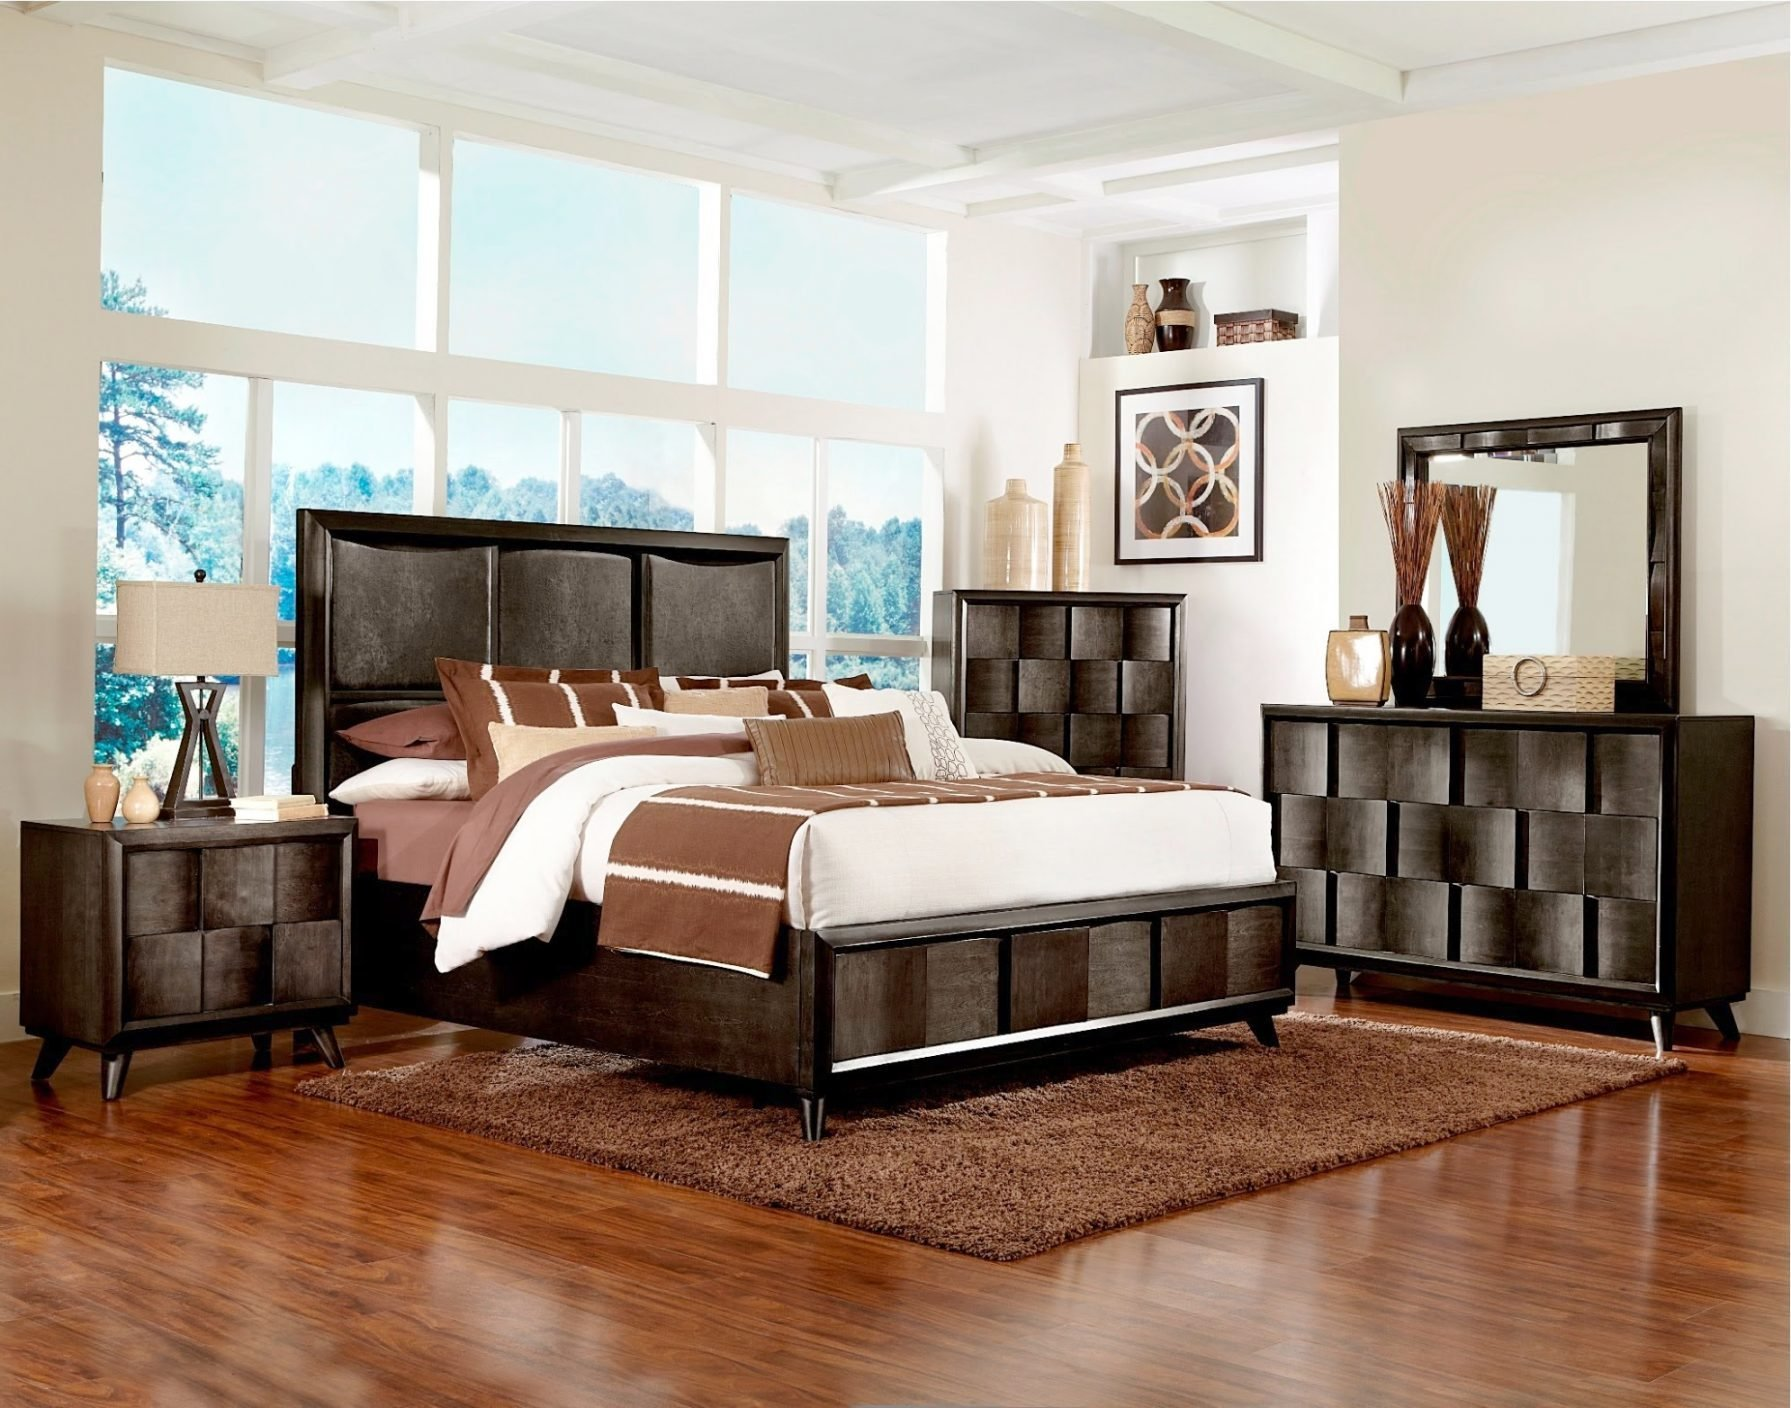 Best Magnussen Bedroom Furniture Reviews Riasztoszerelo Com With Pictures